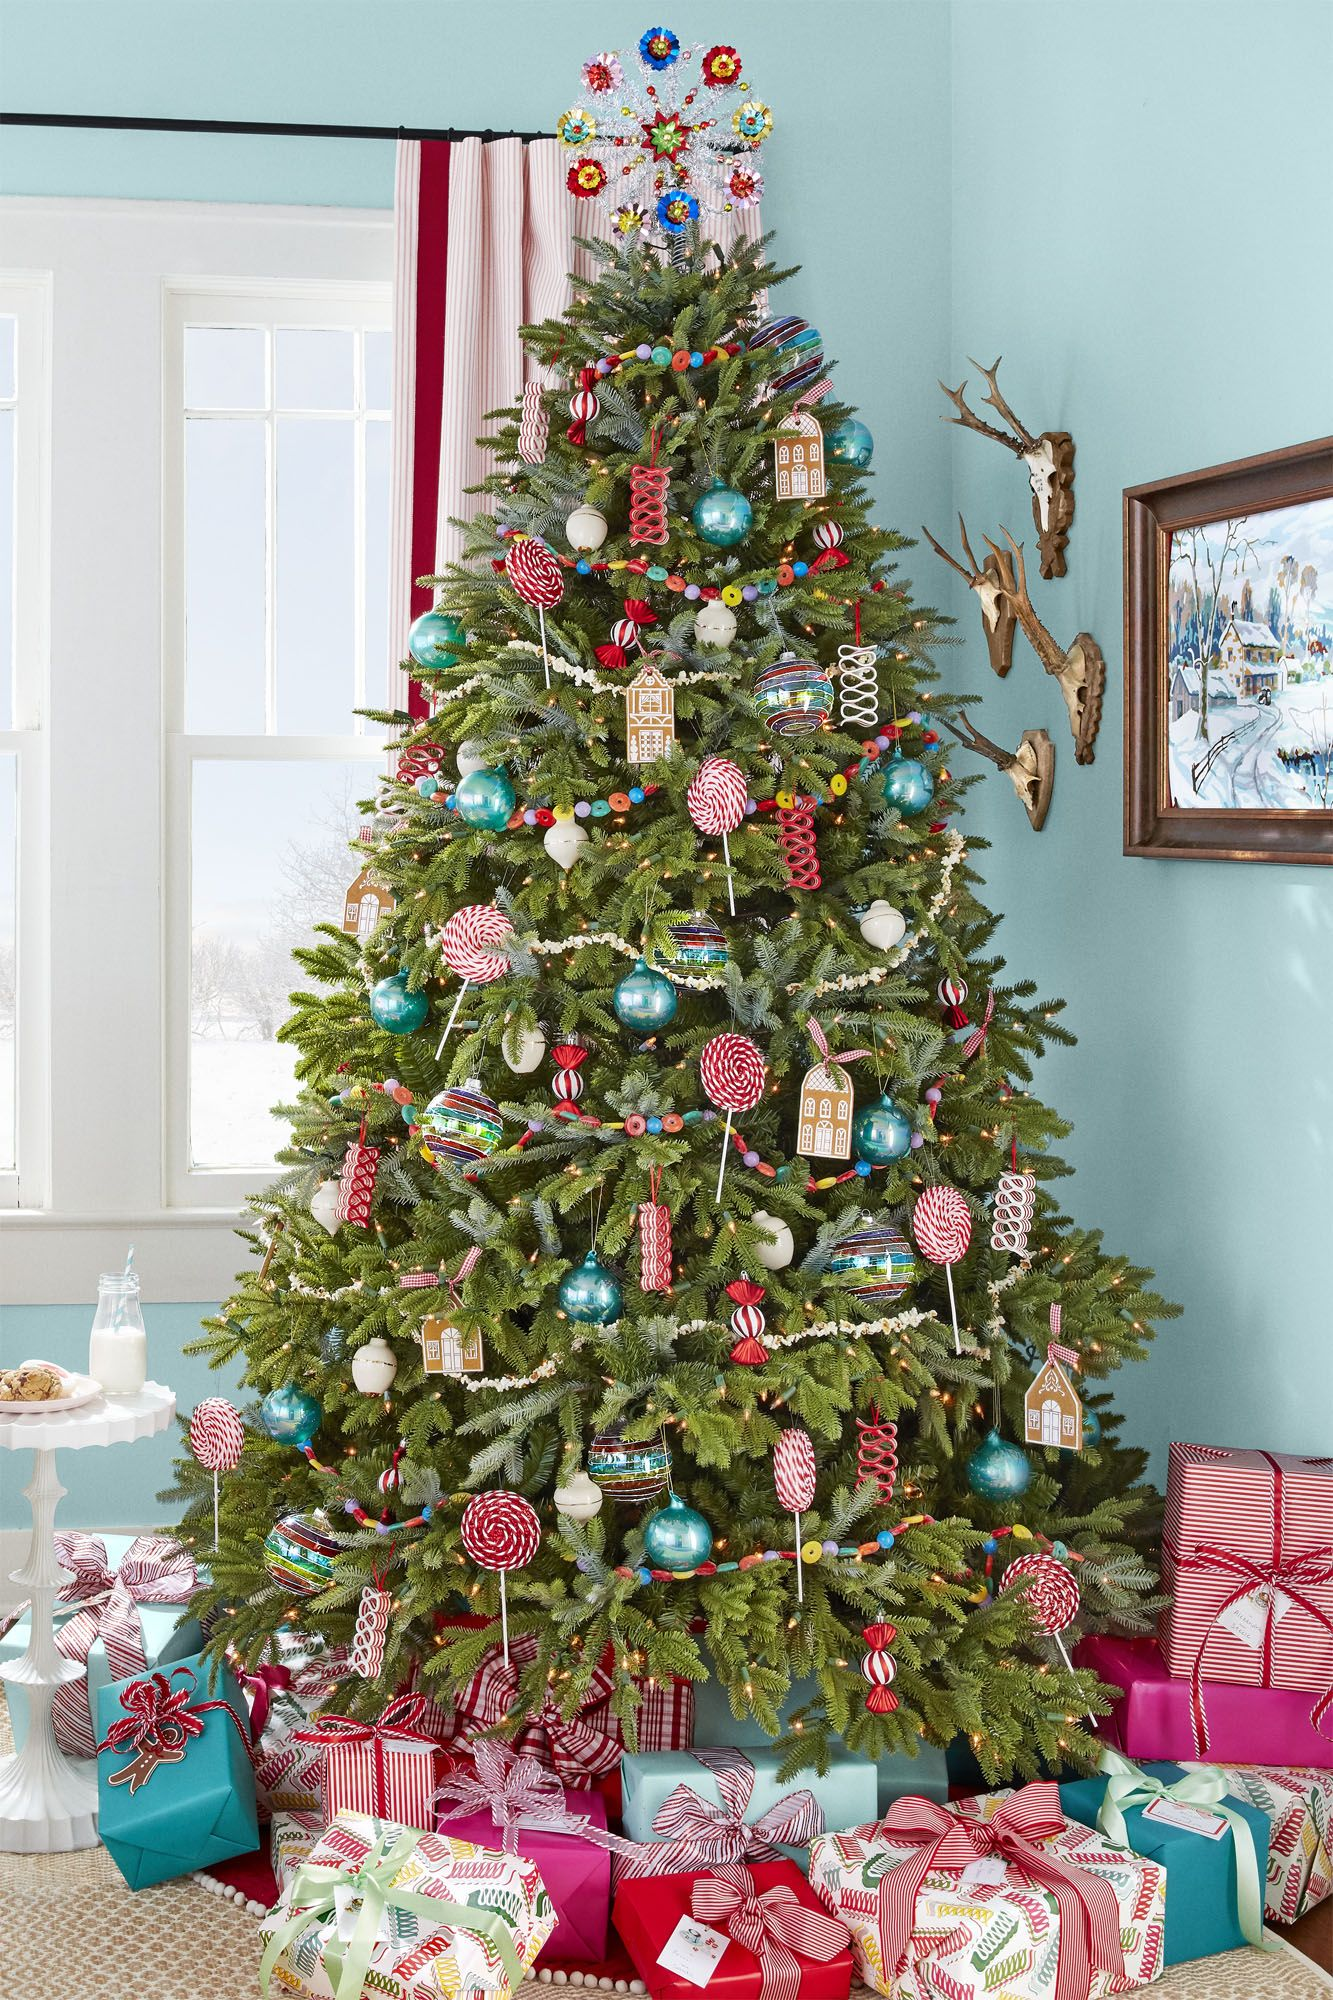 42 Unique Christmas Tree Decorations 2019 Ideas For